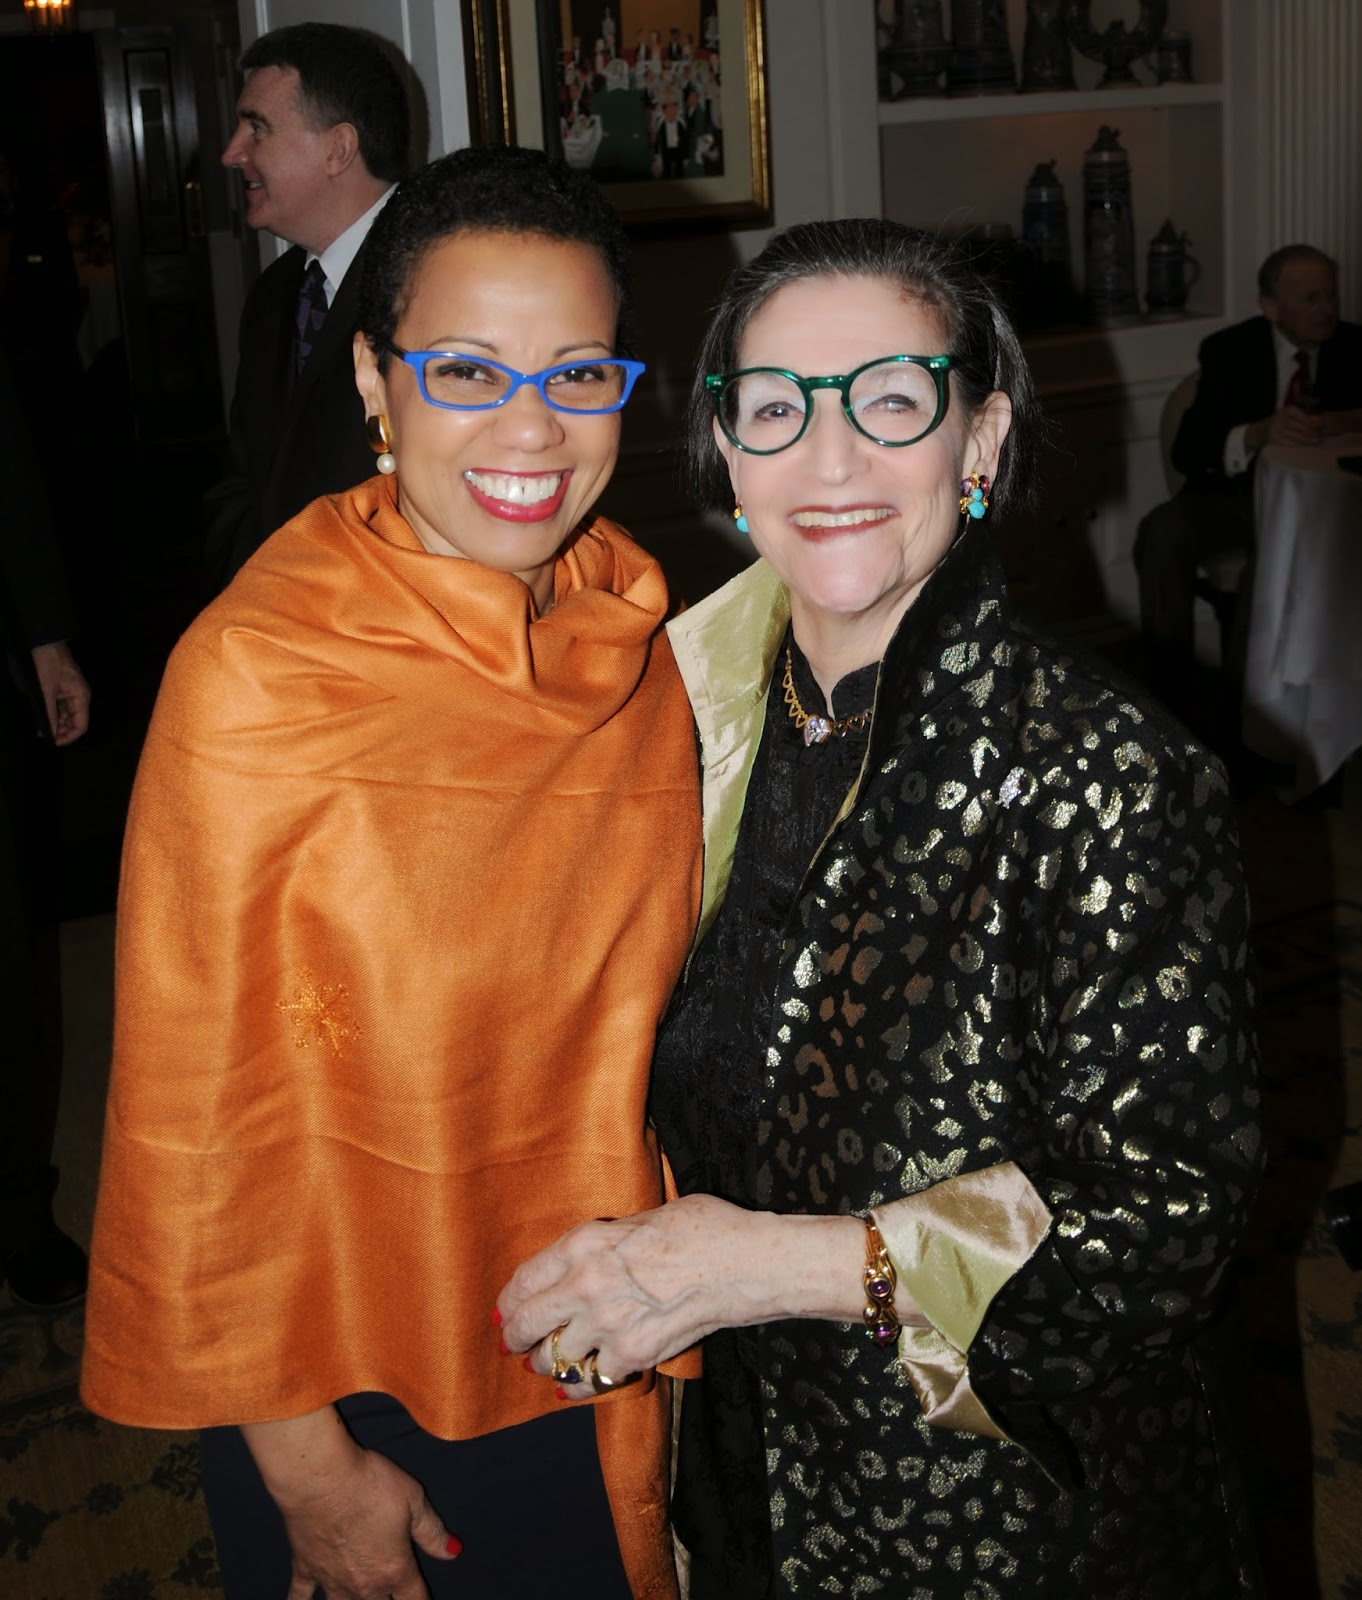 Karen with Harolyn Blackwell (New York, March 2014)